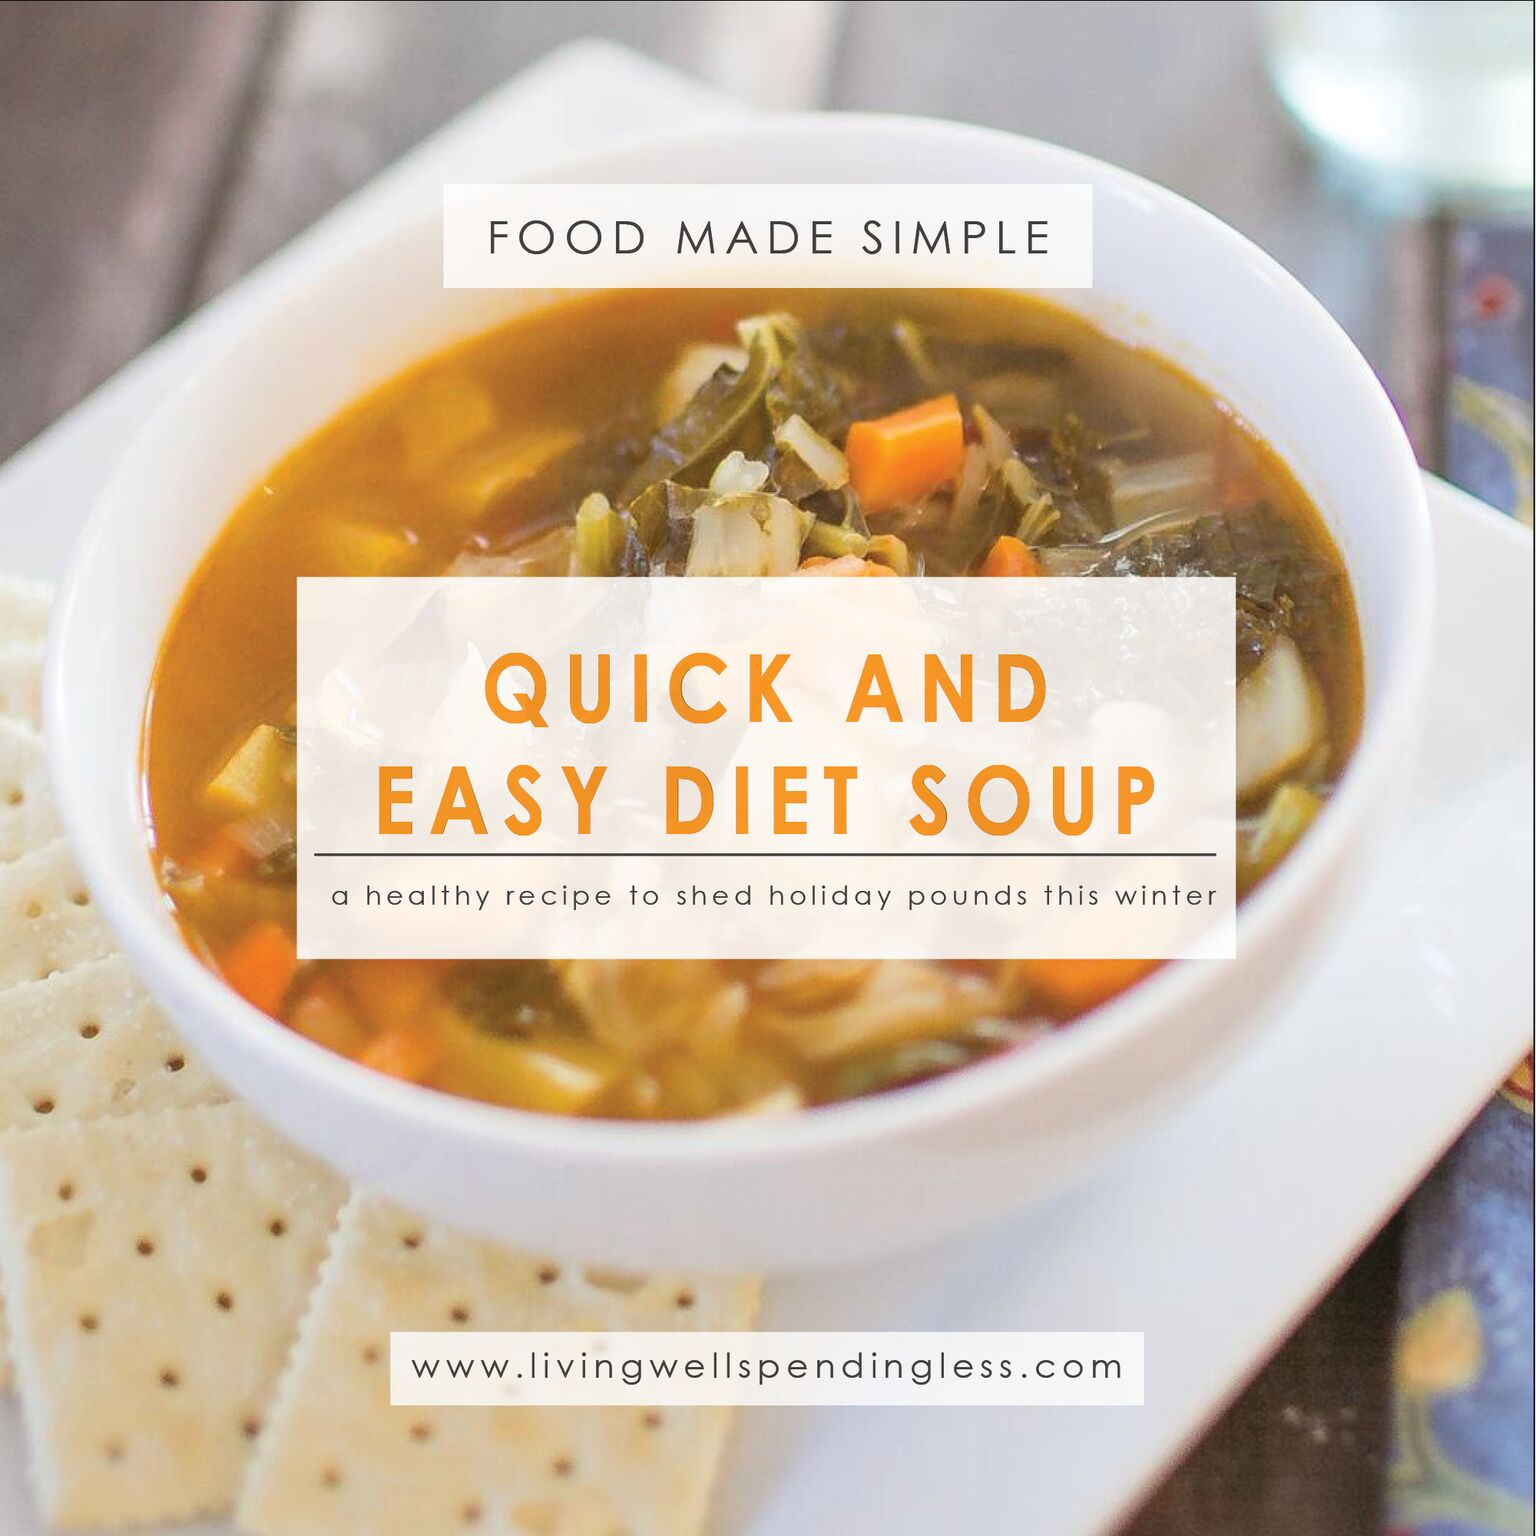 Winter Diet Soup Recipe | Healthy Winter Soup | Slimming Soups | Fat-Burning Soups | Winter Weight Loss Soup⎢Quick and Easy Recipes